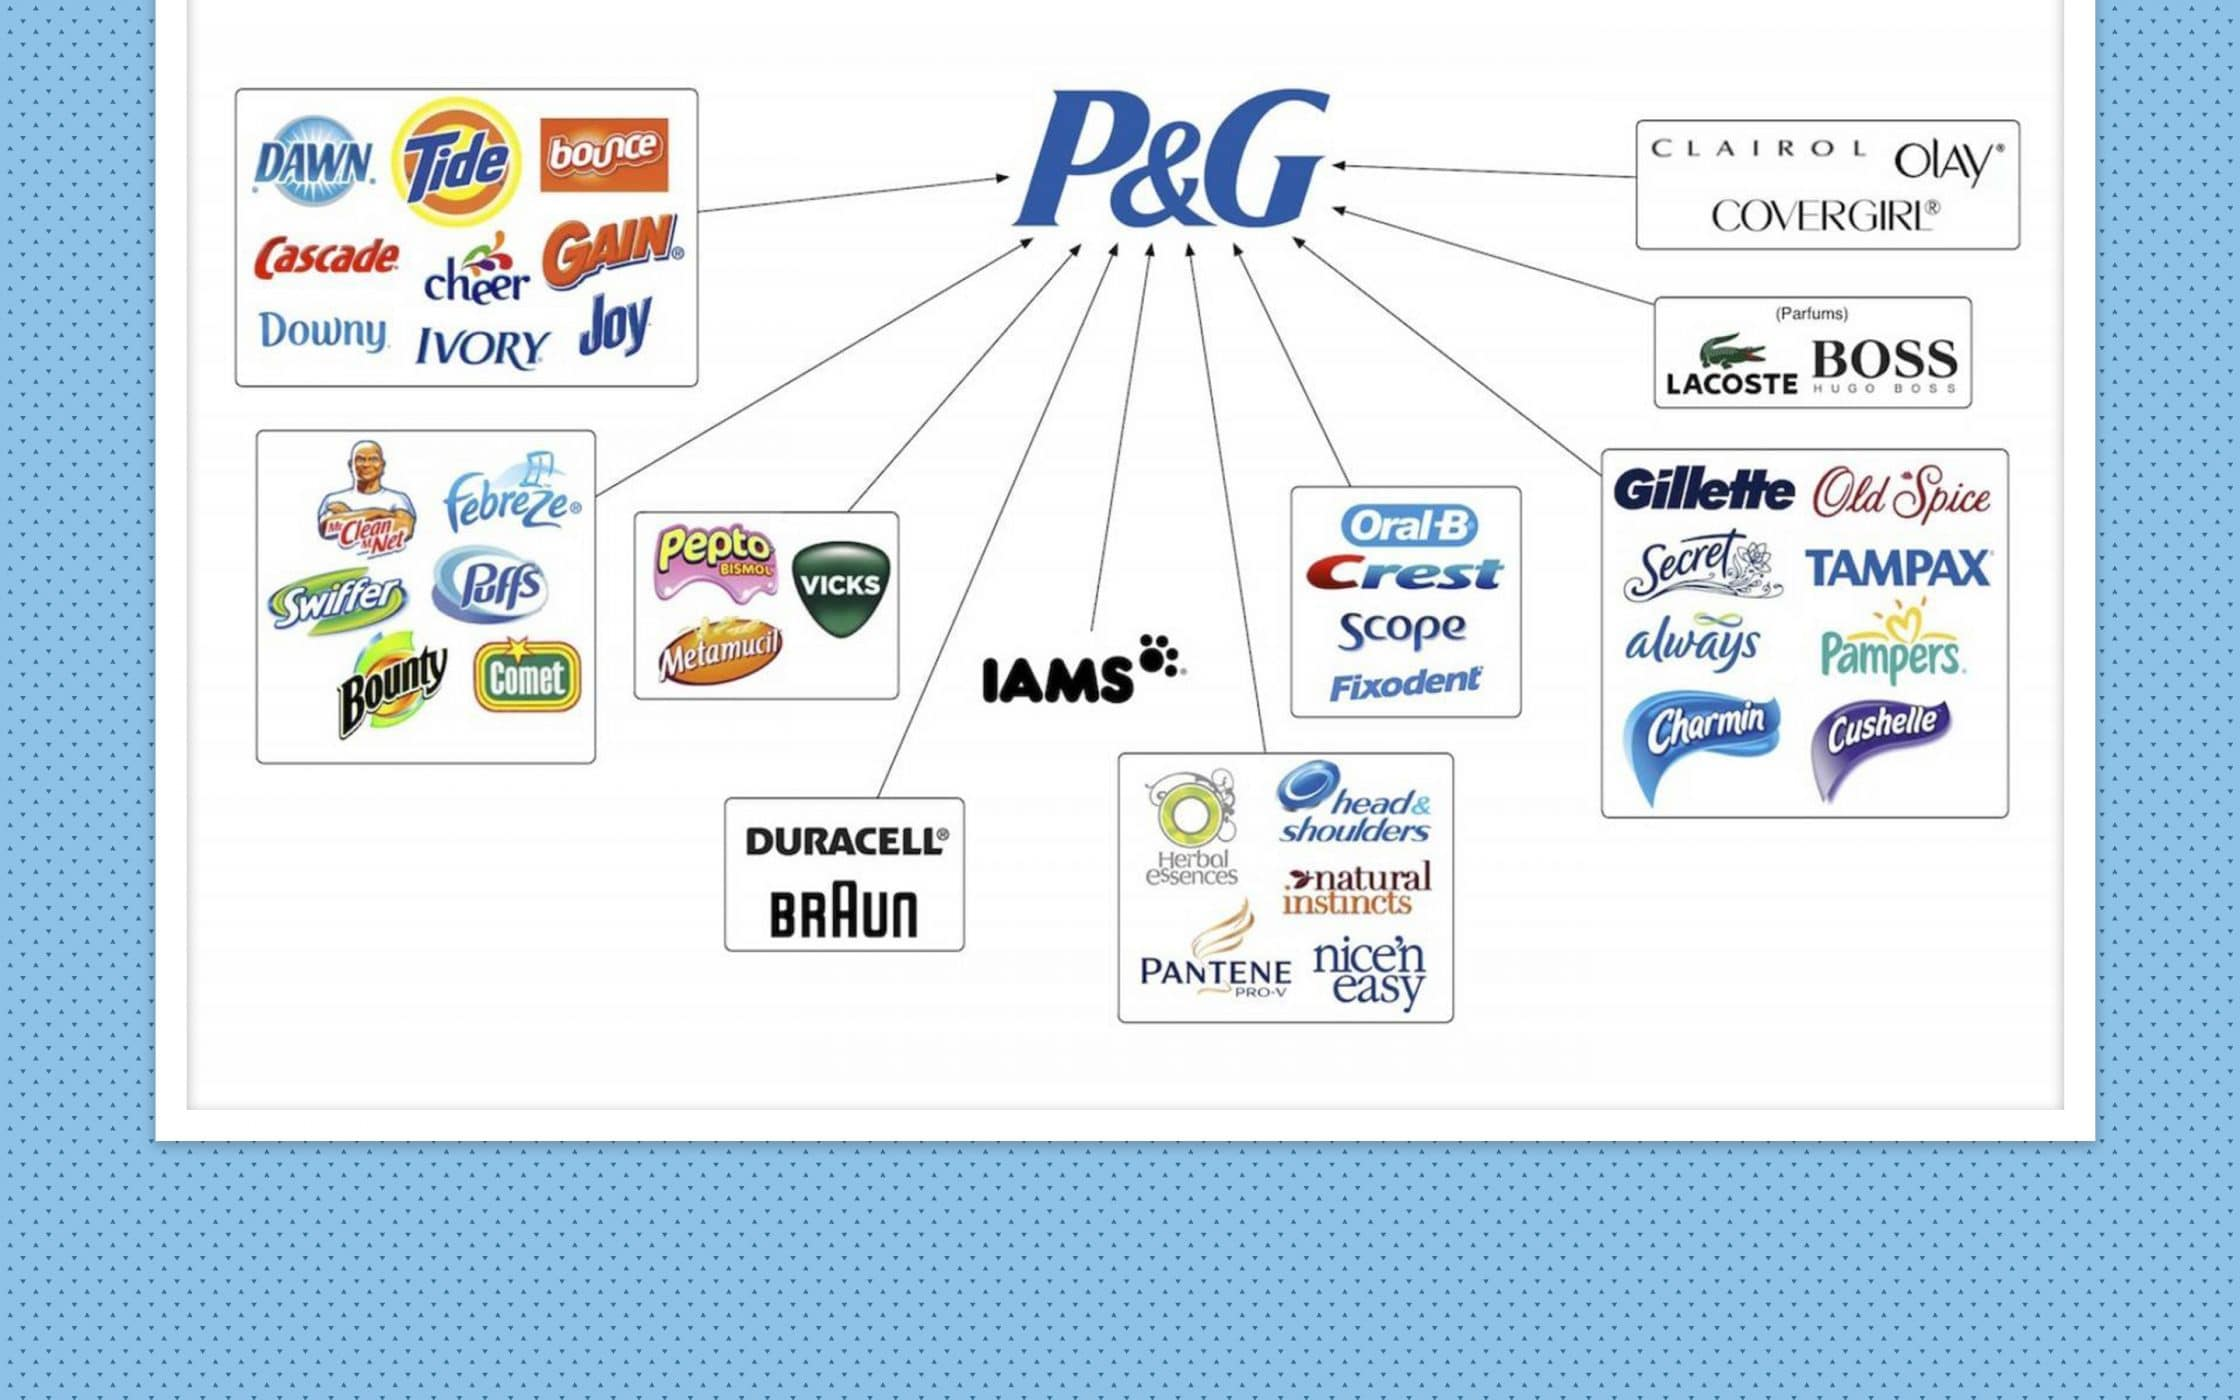 Behind Every Great Merger, There's A Great Merger Branding Strategy